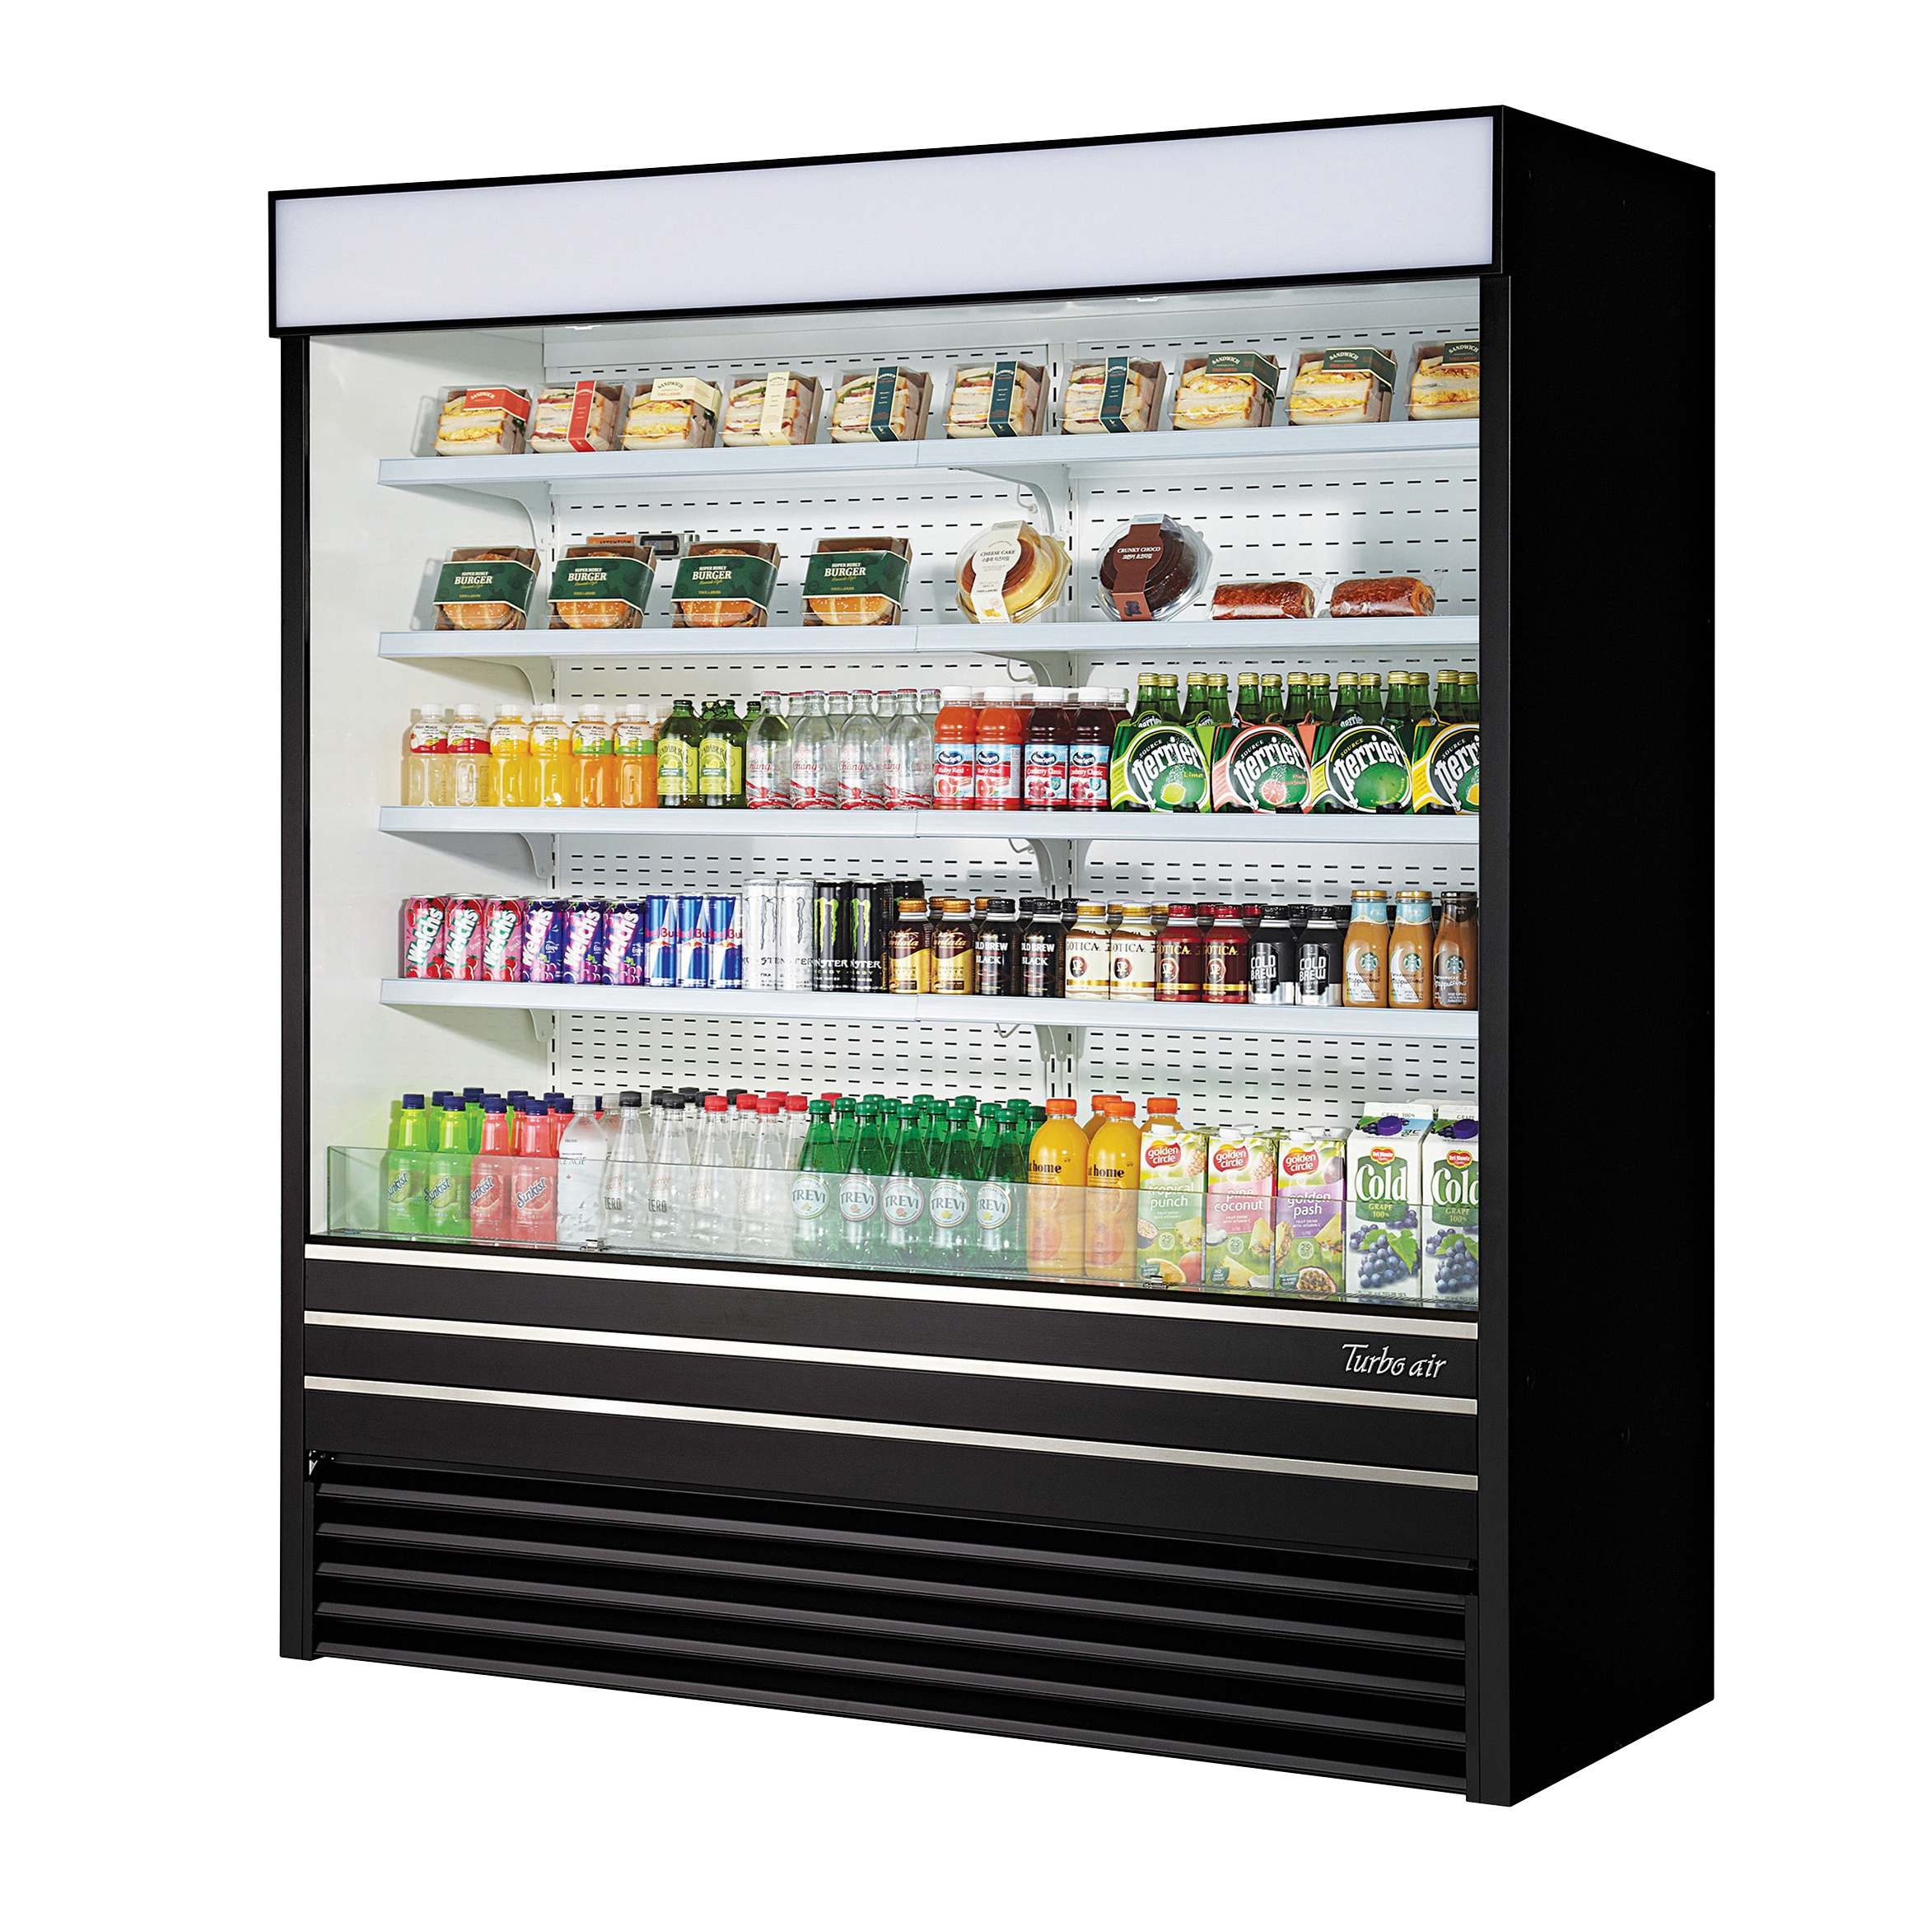 TOM-72EB-N Turbo Air merchandiser, open refrigerated display